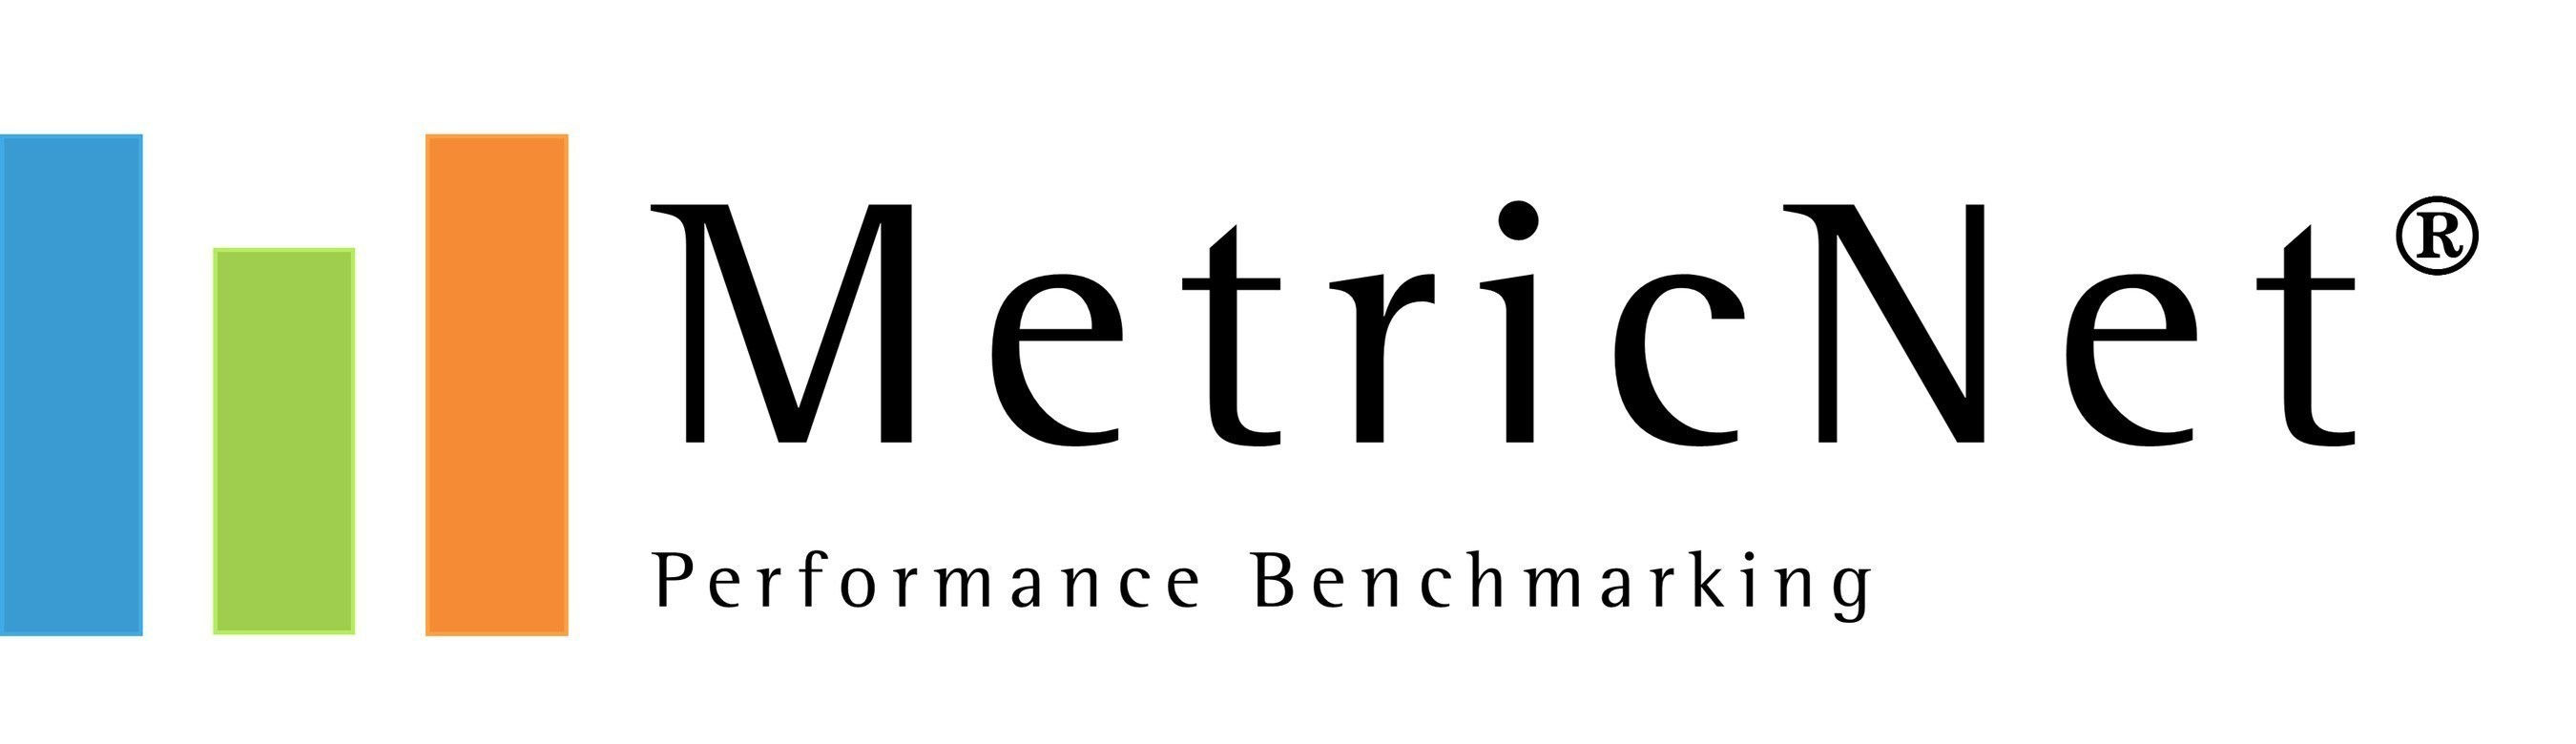 MetricNet Delivers Presentation on the Power of Metrics at the 2016 HDI Conference